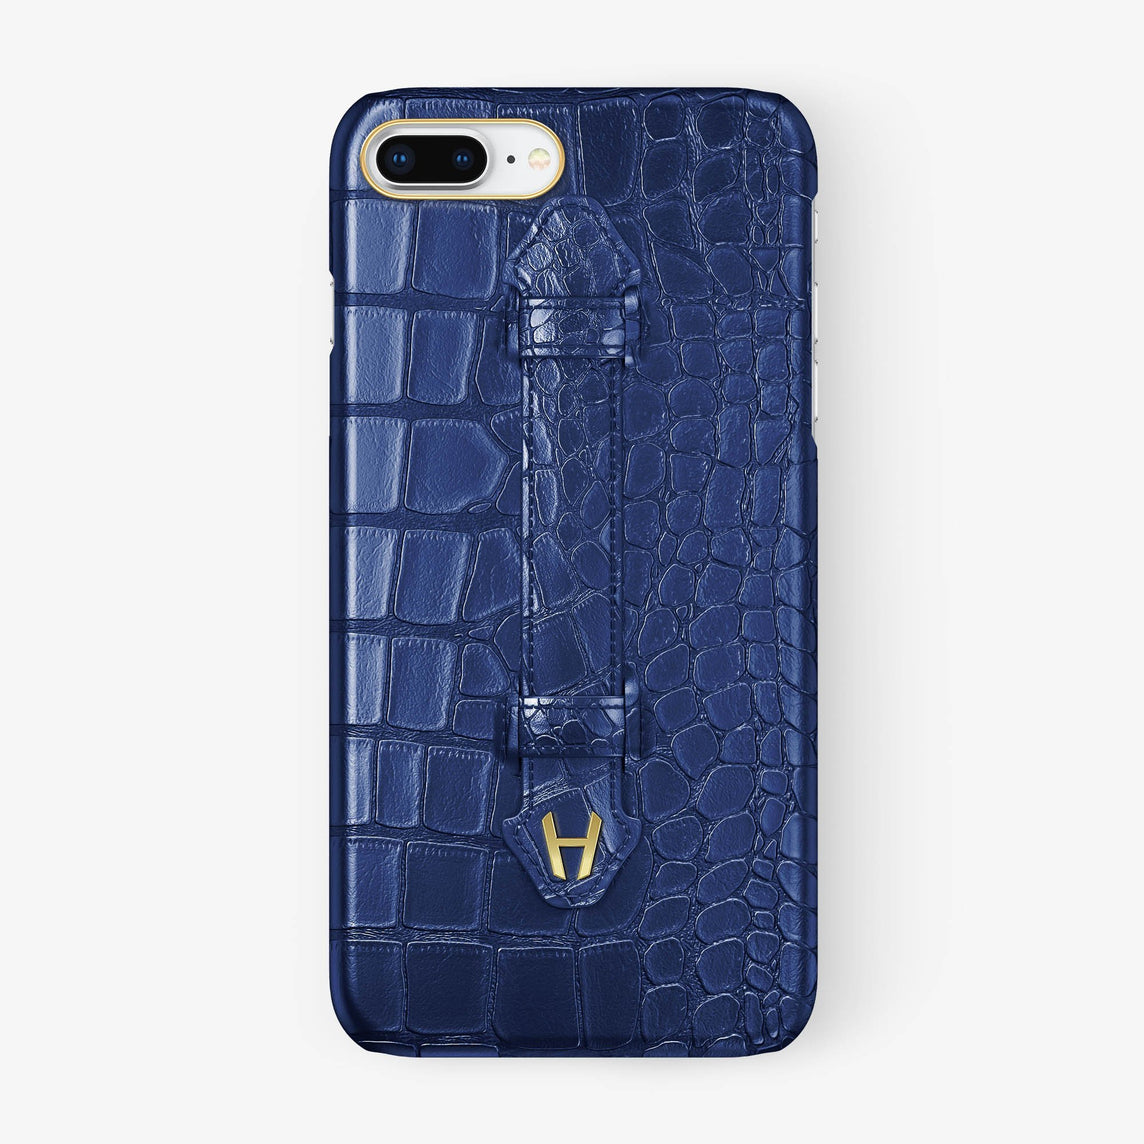 Navy Blue Alligator iPhone Finger Case for iPhone 7/8 Plus finishing yellow gold - Hadoro Luxury Cases